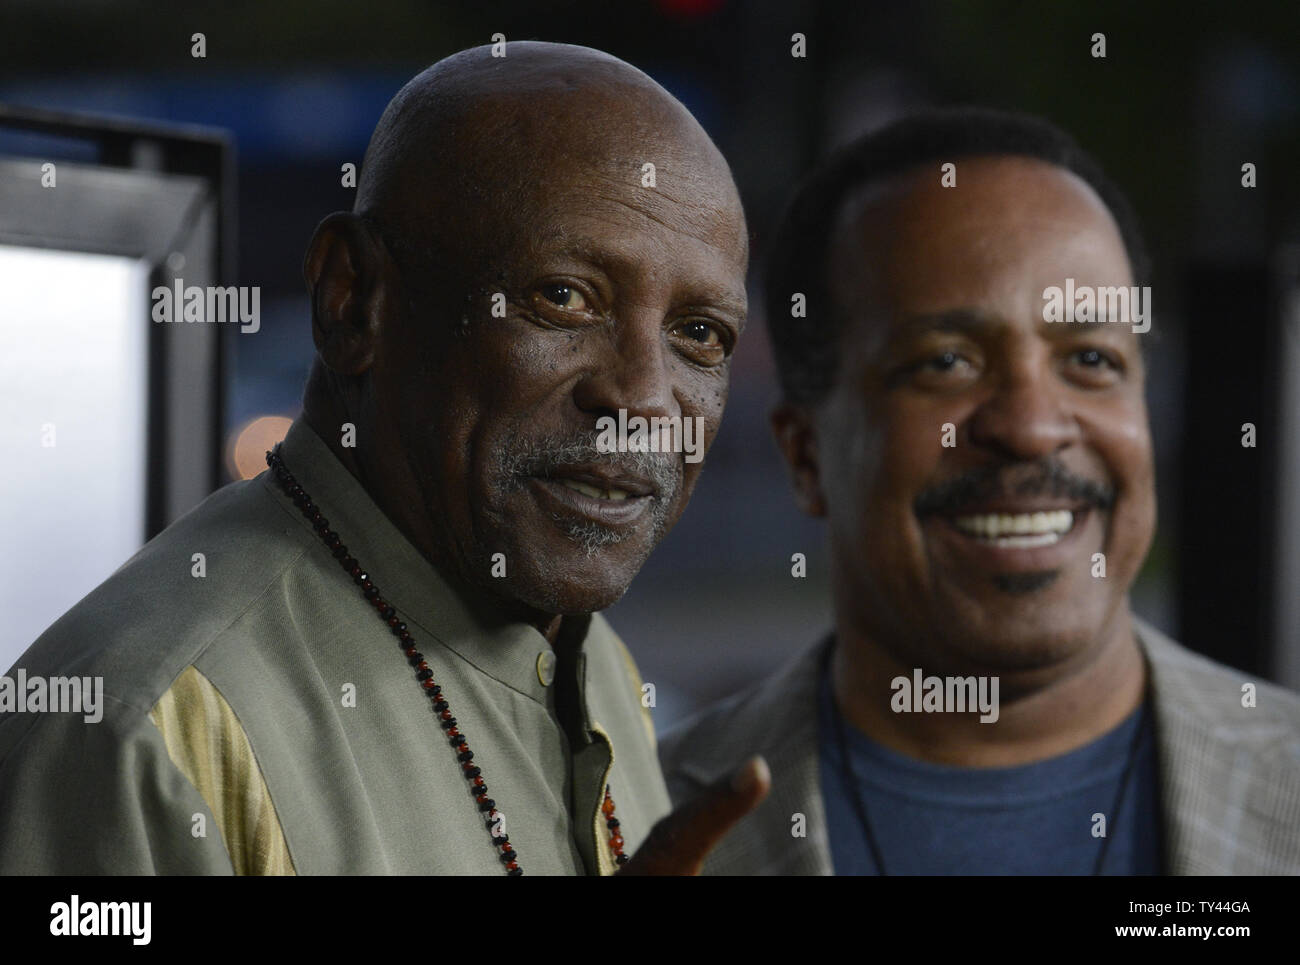 robert gossett major crimesrobert gossett actor, robert gossett, robert gossett jr, роберт госсетт, robert gossett obituary, robert gossett father, robert gossett wife, robert gossett net worth, robert gossett major crimes, robert gossett the closer, robert gossett junior, robert gossett family tree, robert gossett imdb, robert gossett son, robert gossett bio, robert gossett actor the closer, robert gossett parents, robert gossett wikipedia, robert gossett family, robert gossett picture